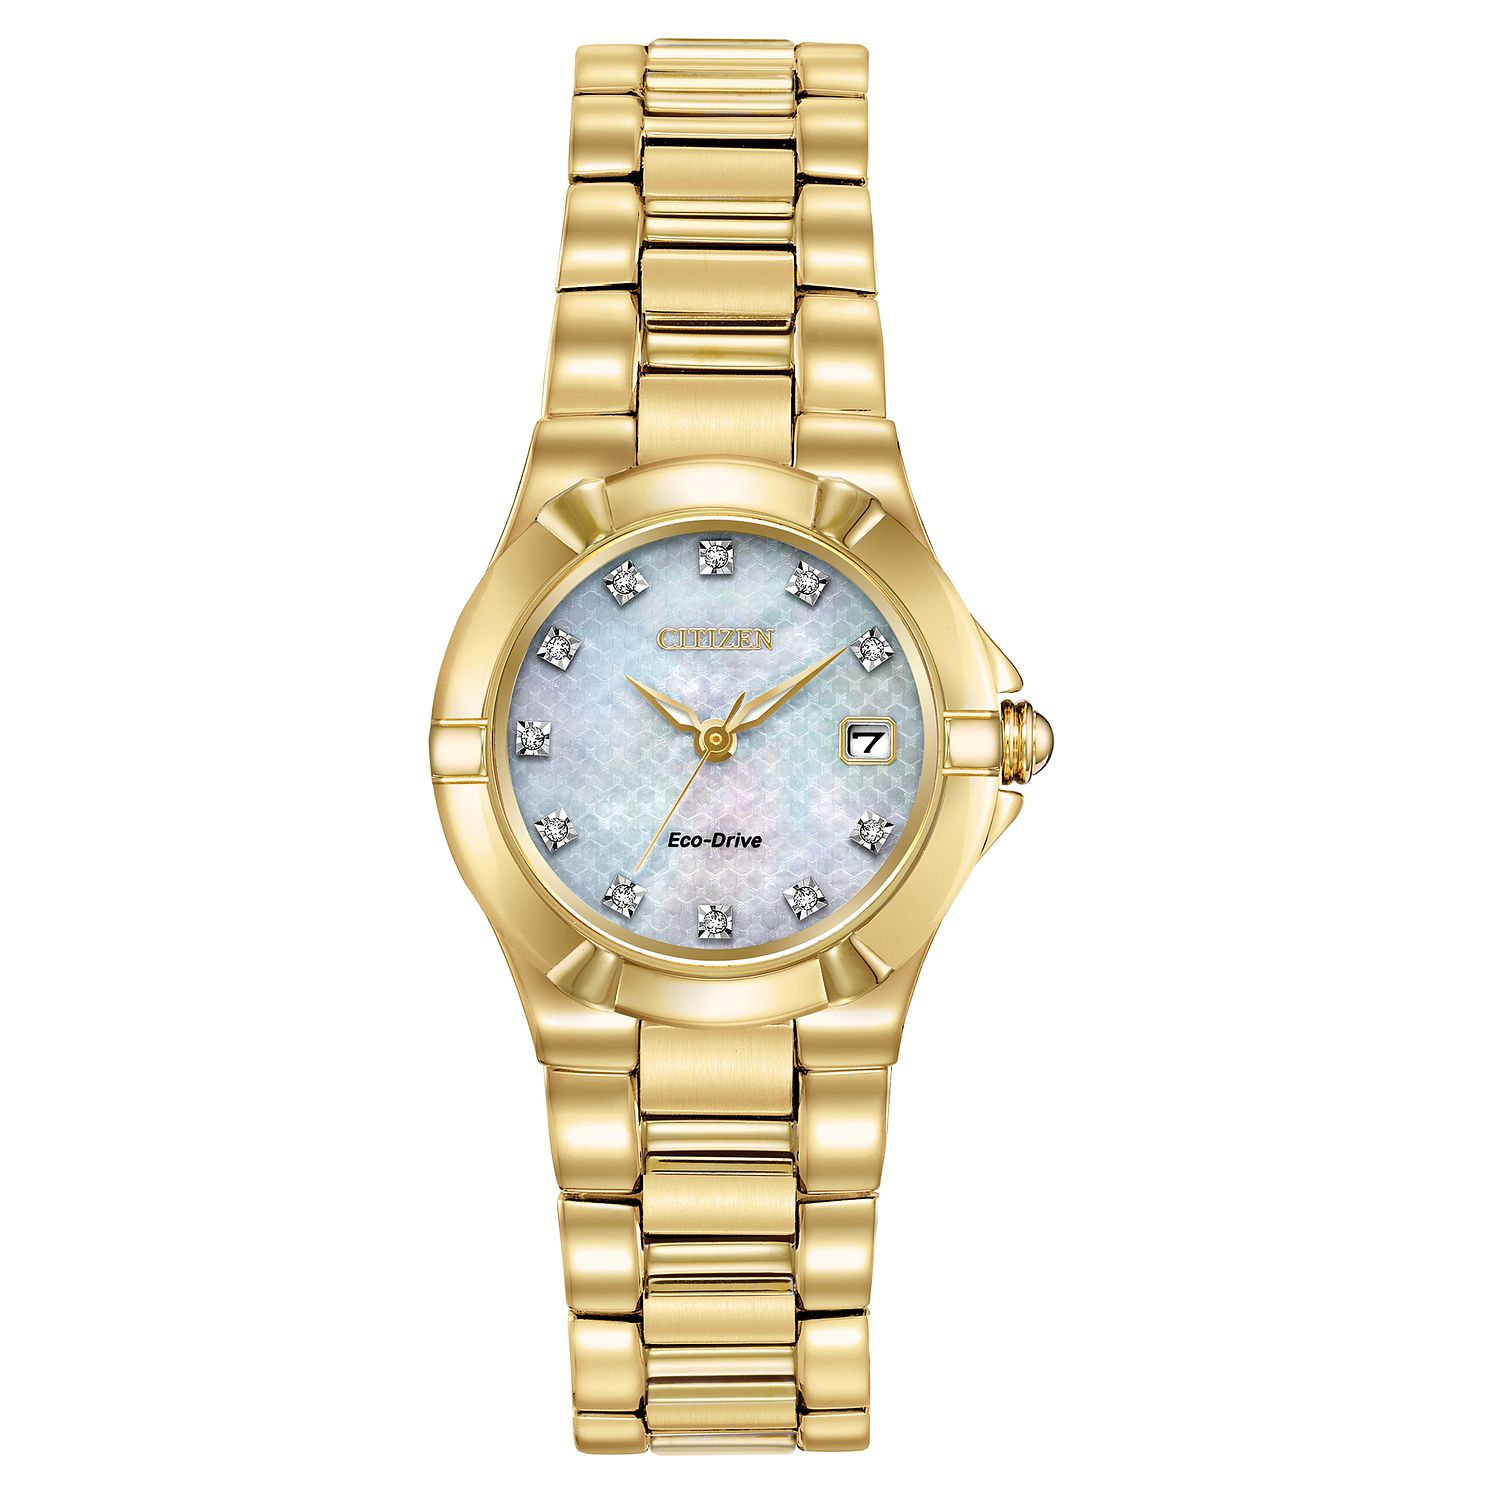 Citizen Eco-Drive Diamond Ladies' Gold Tone Bracelet Watch - Product number 5276349